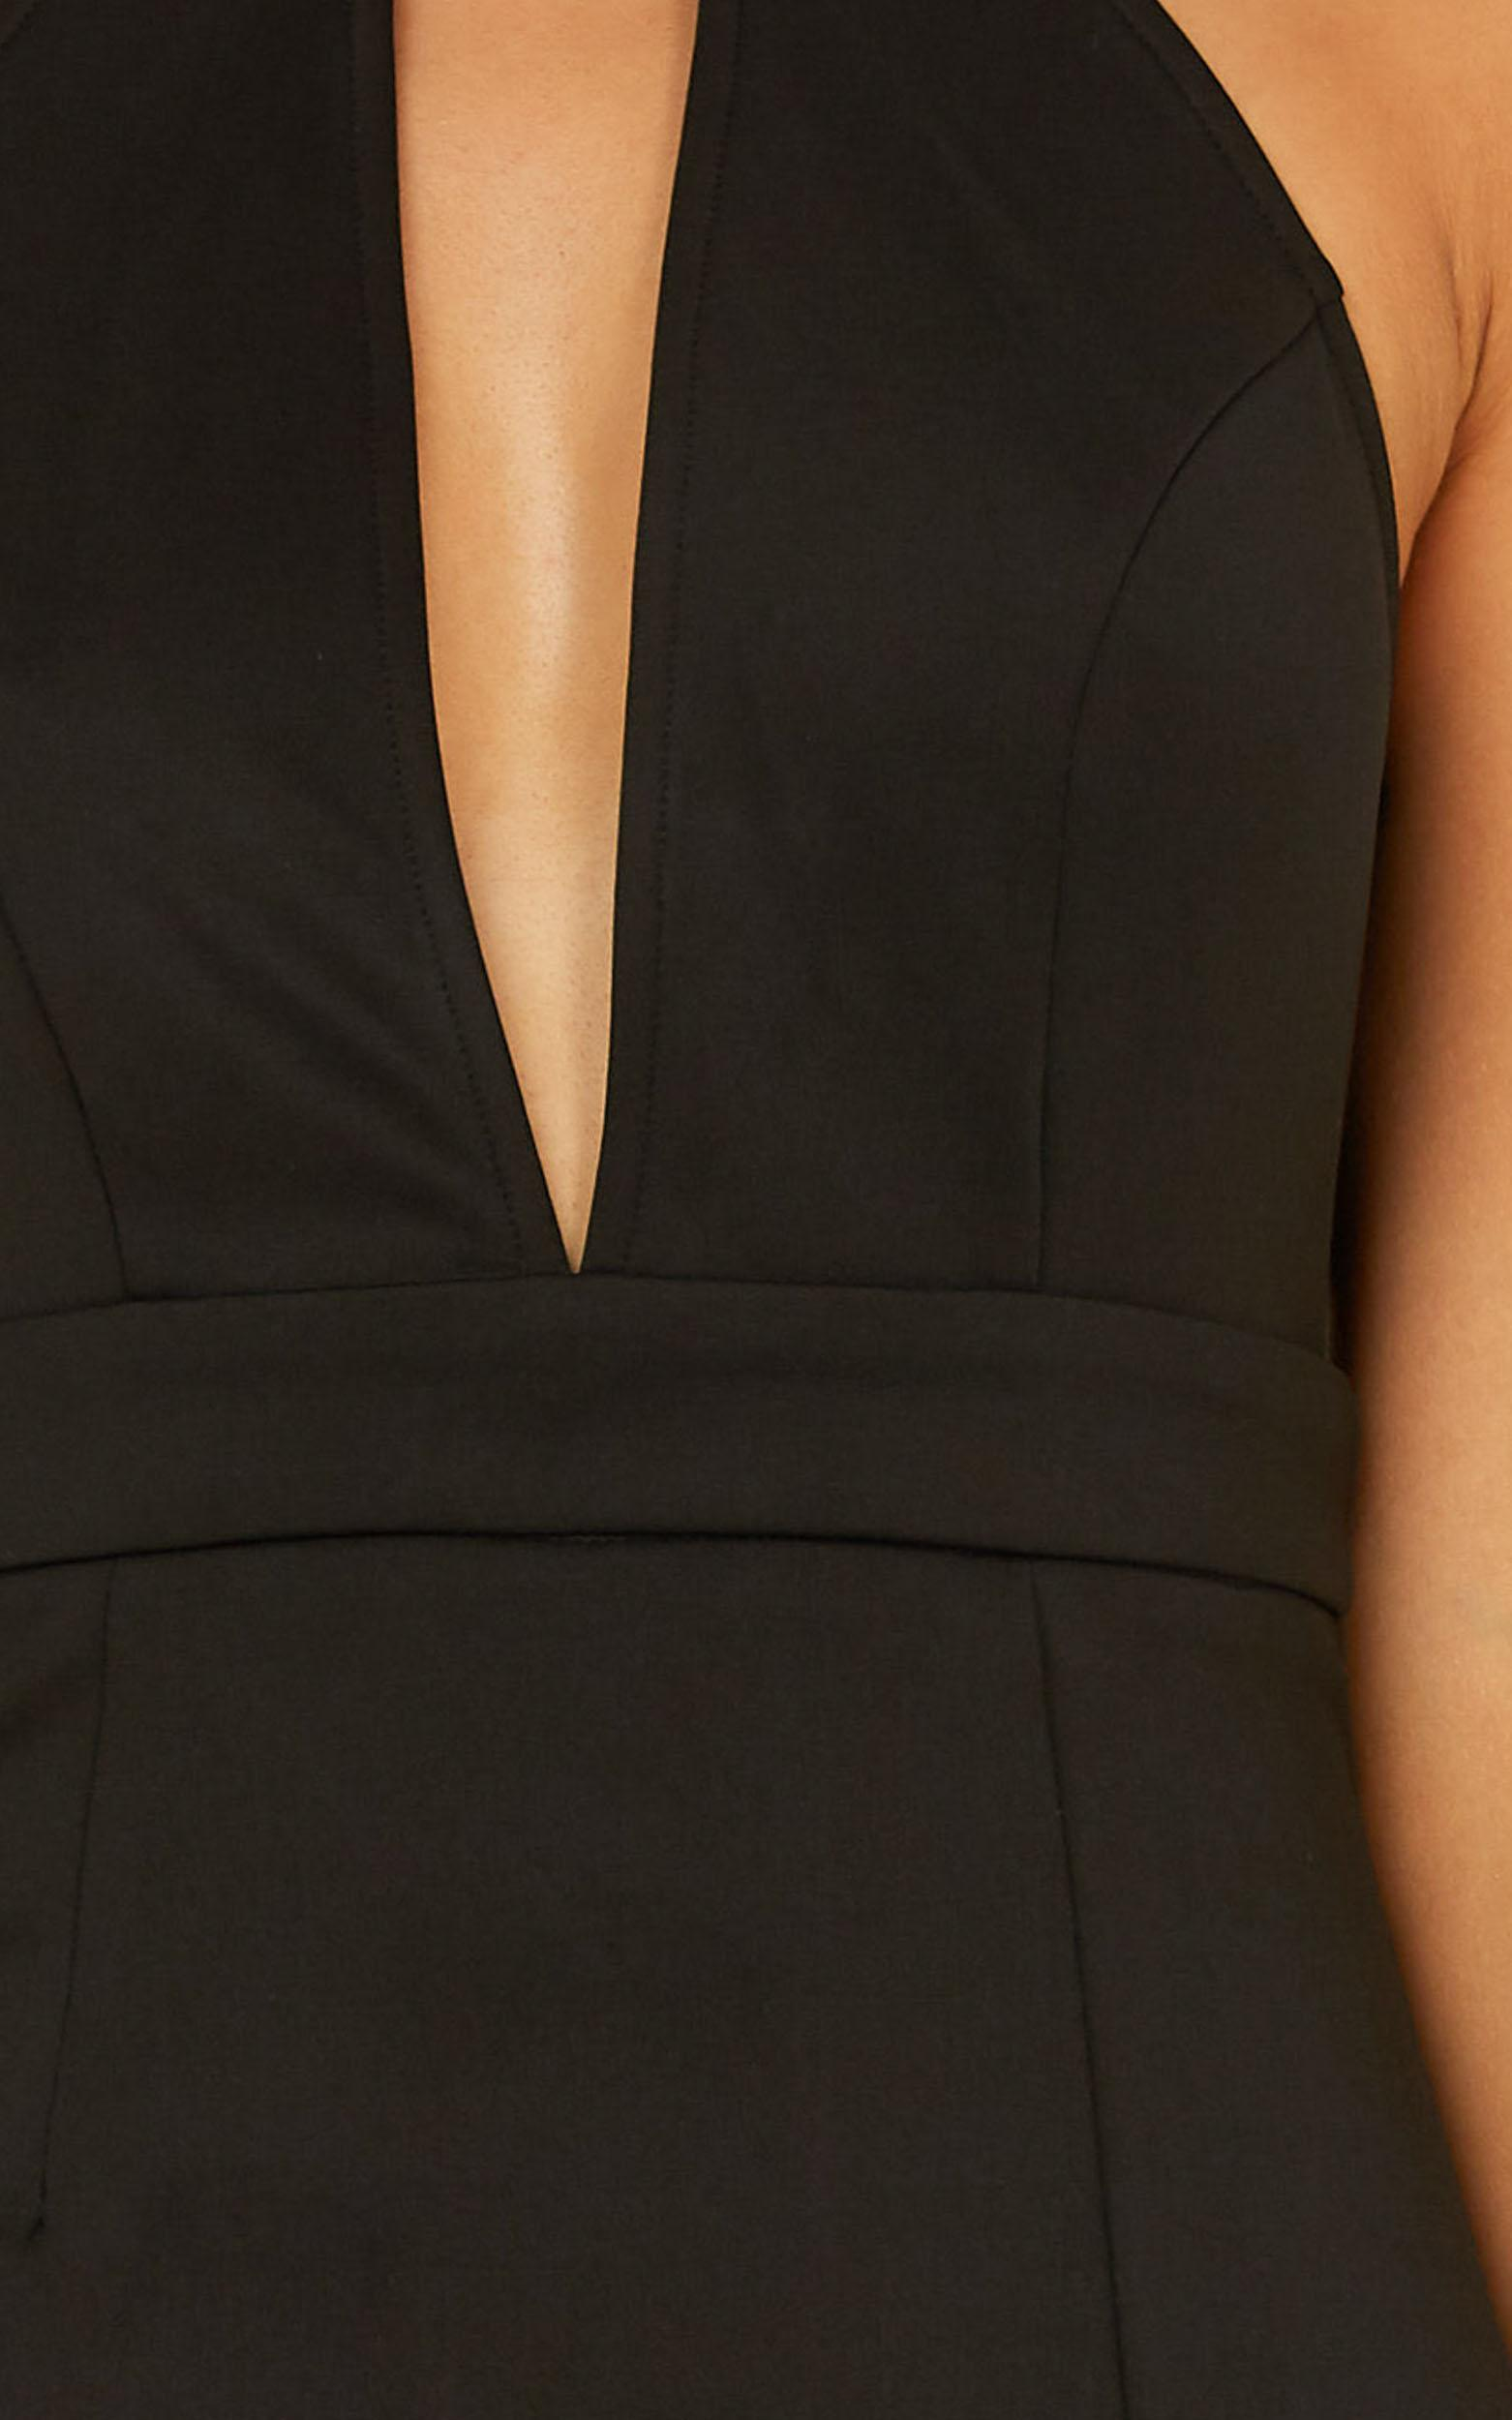 You Are Lovely Dress in black - 20 (XXXXL), Black, hi-res image number null